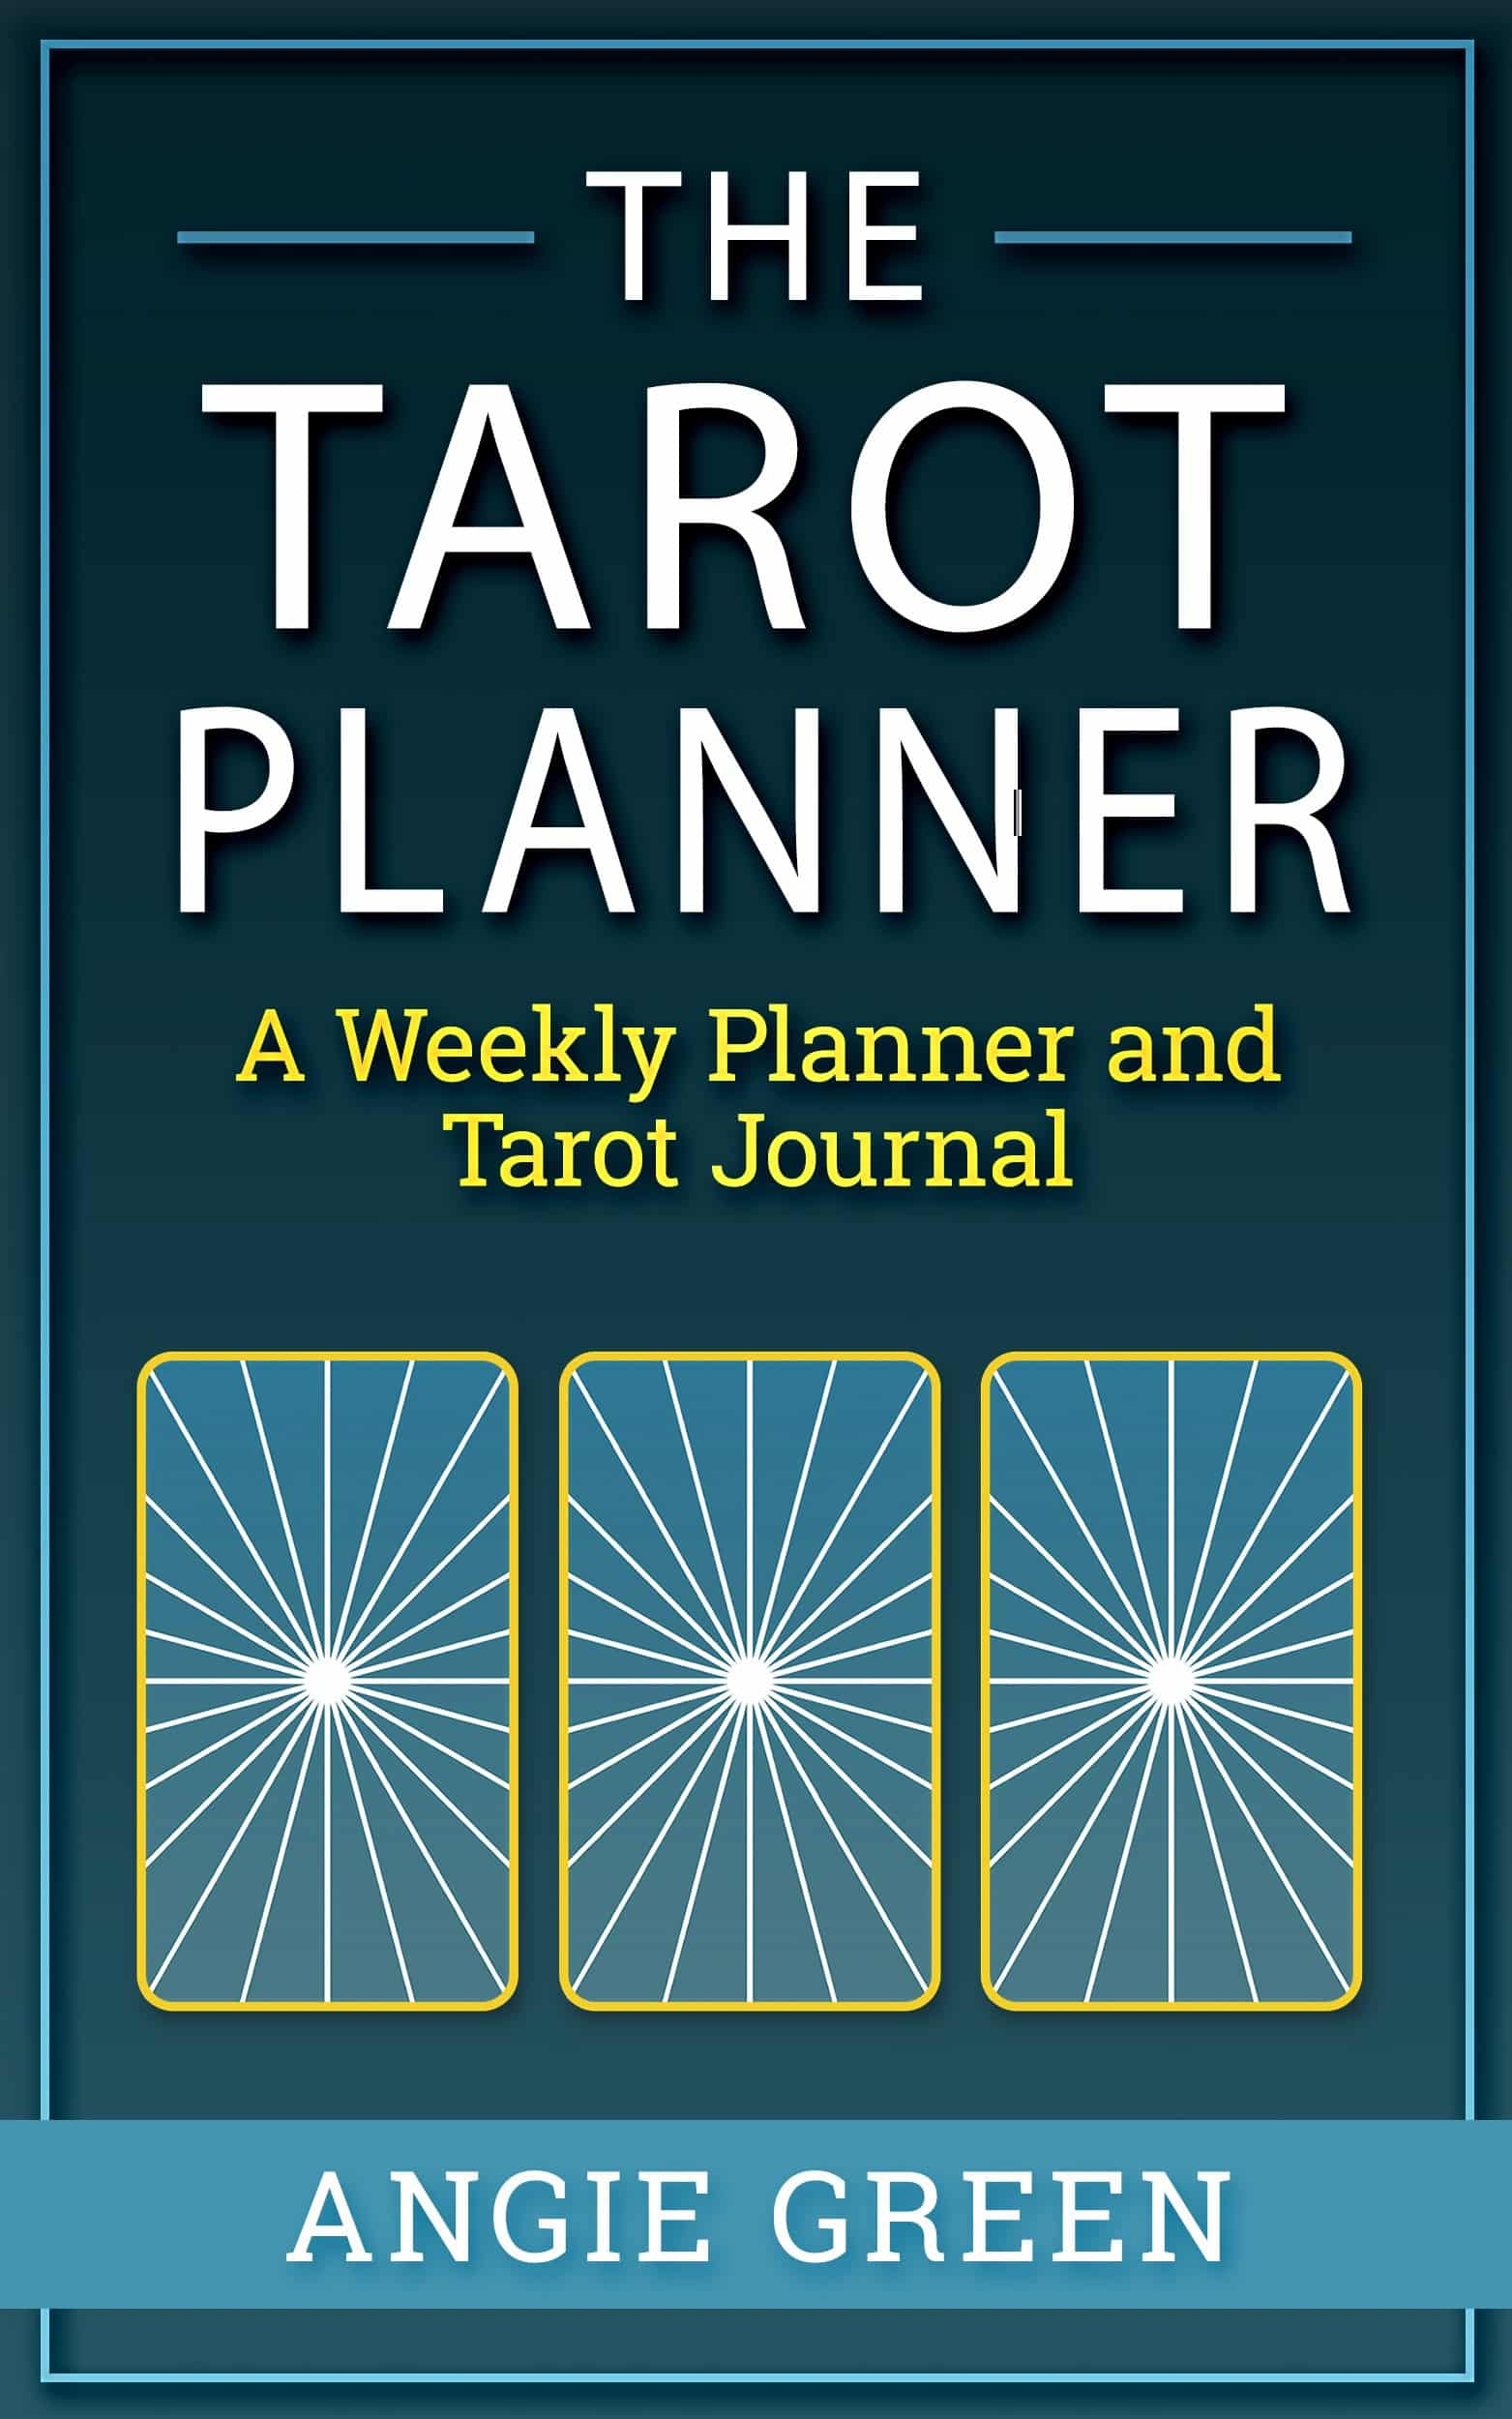 Do you love tarot? You'll LOVE using this undated, weekly tarot planner to record your tarot spreads and daily tarot card draws. Get it from The Simple Tarot.